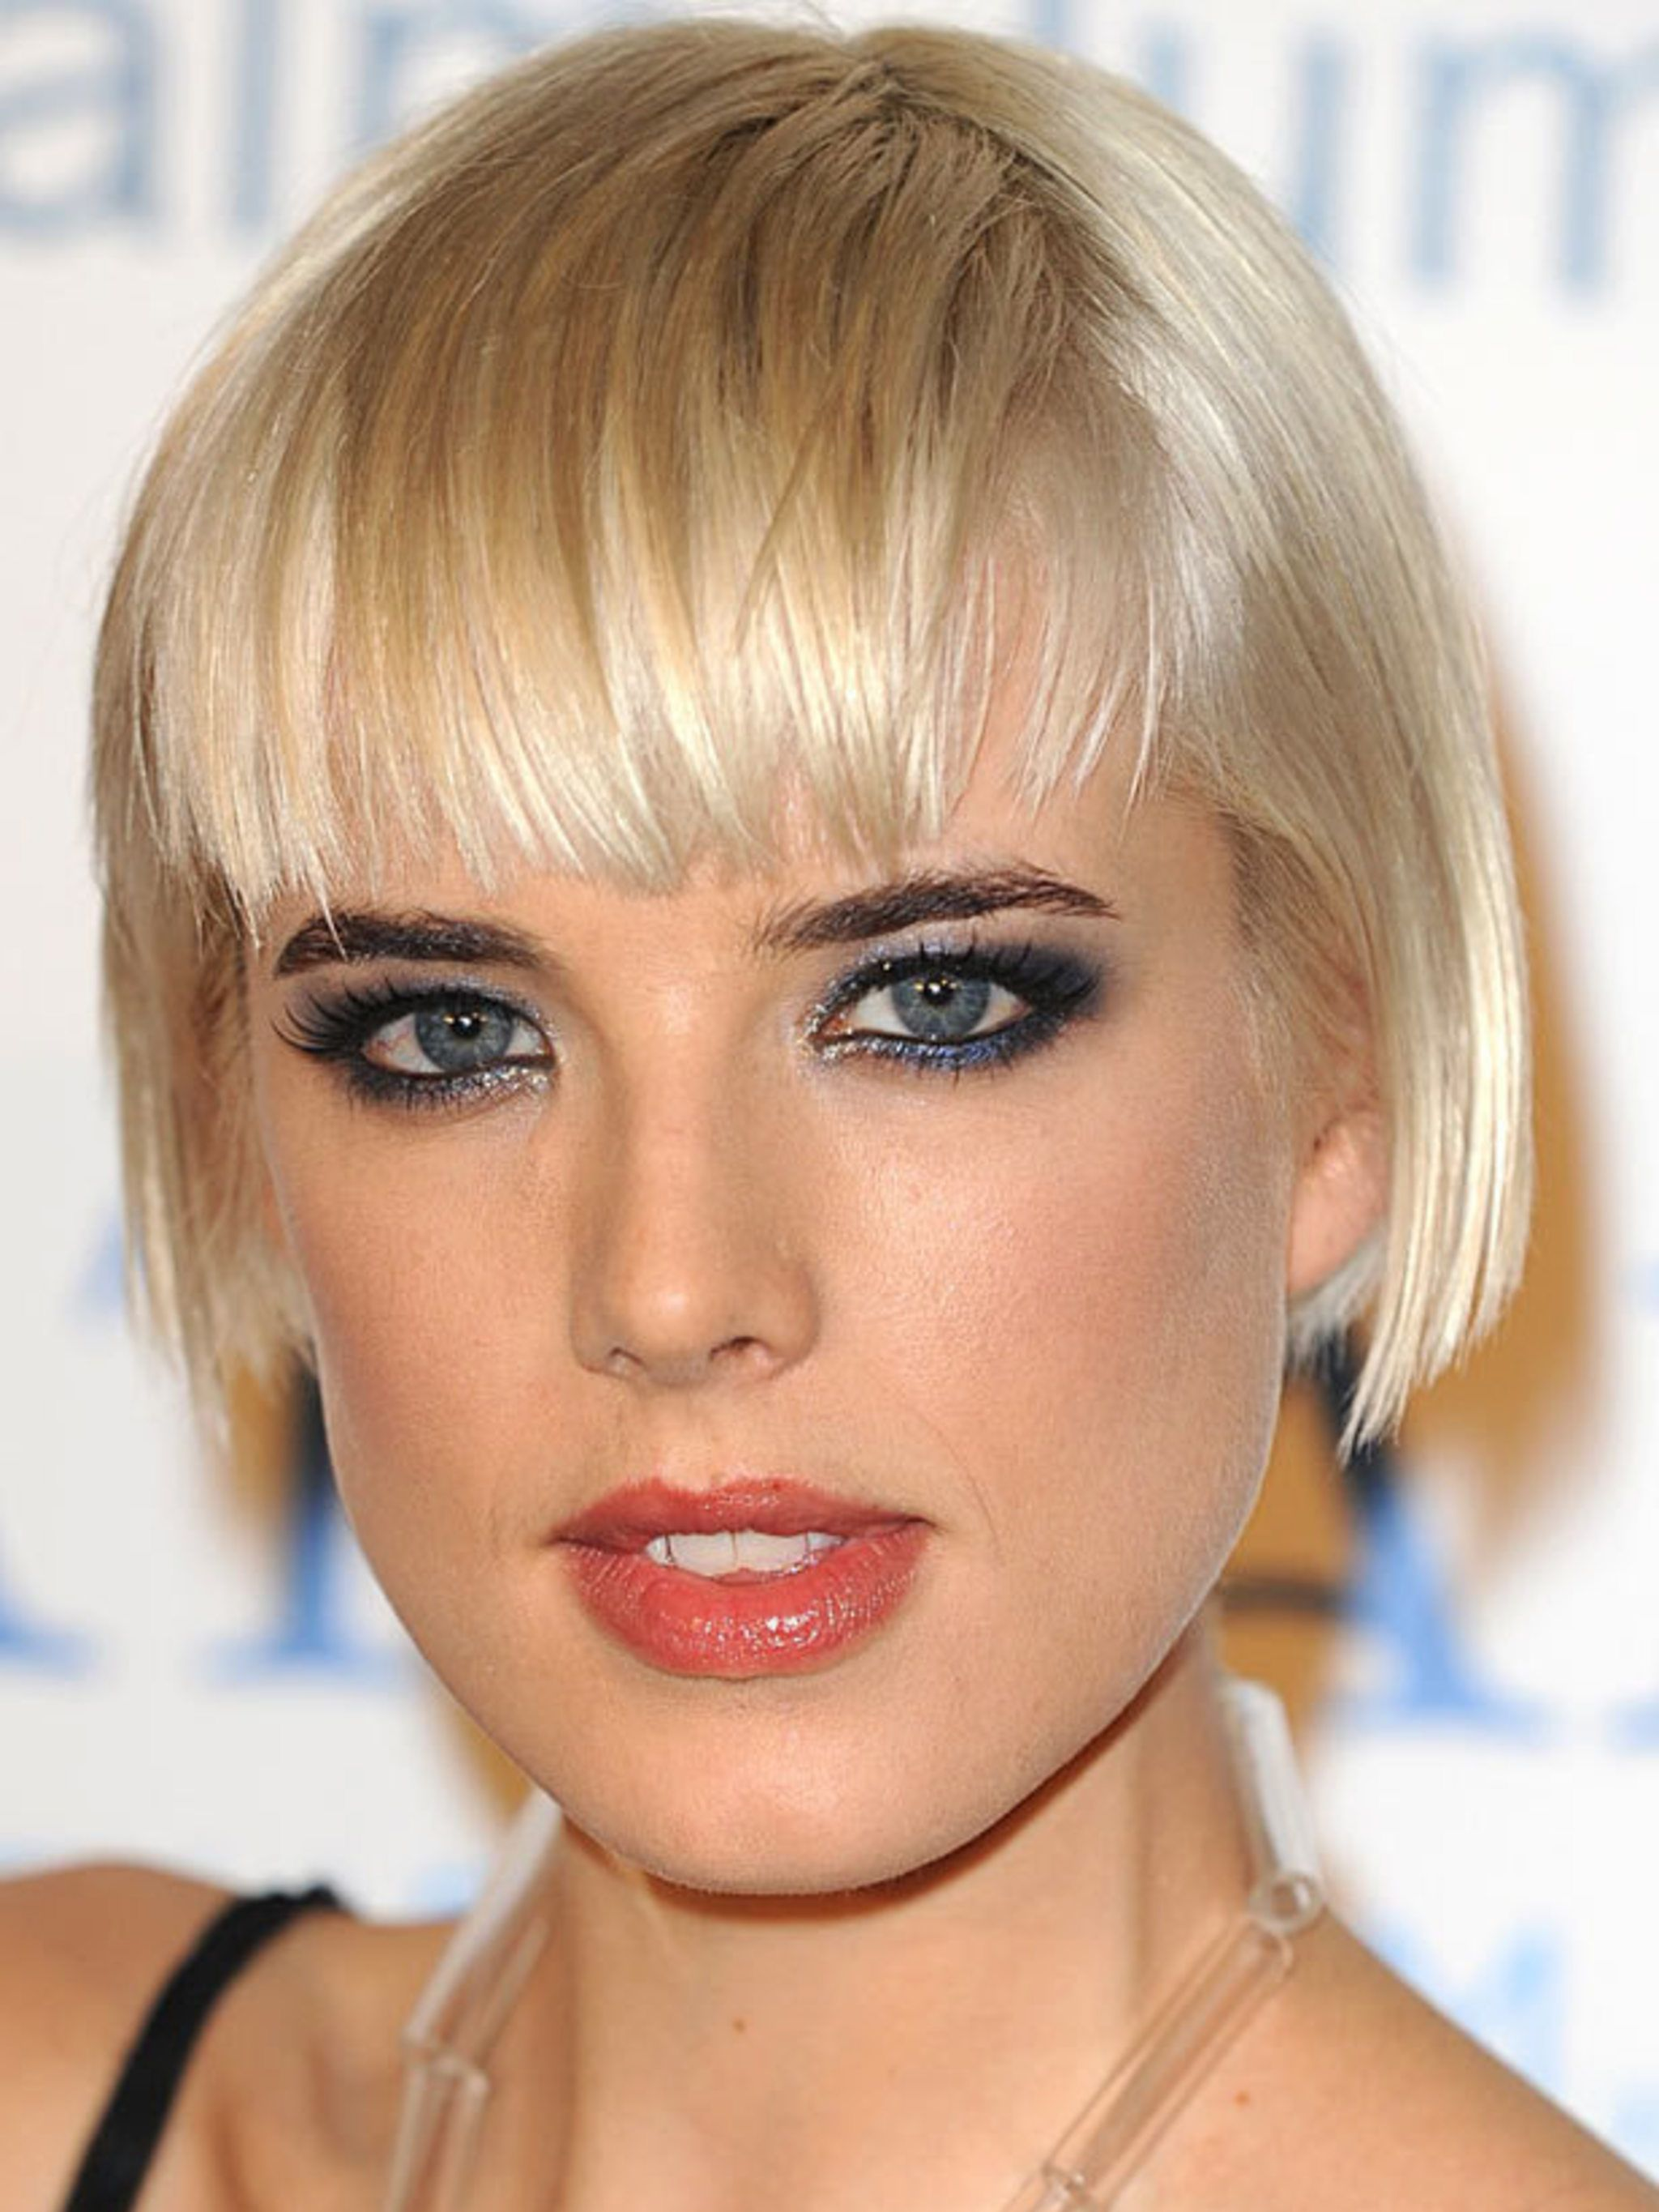 Latest Hairstyles For Girls With Short, Medium \u0026 Long Hair